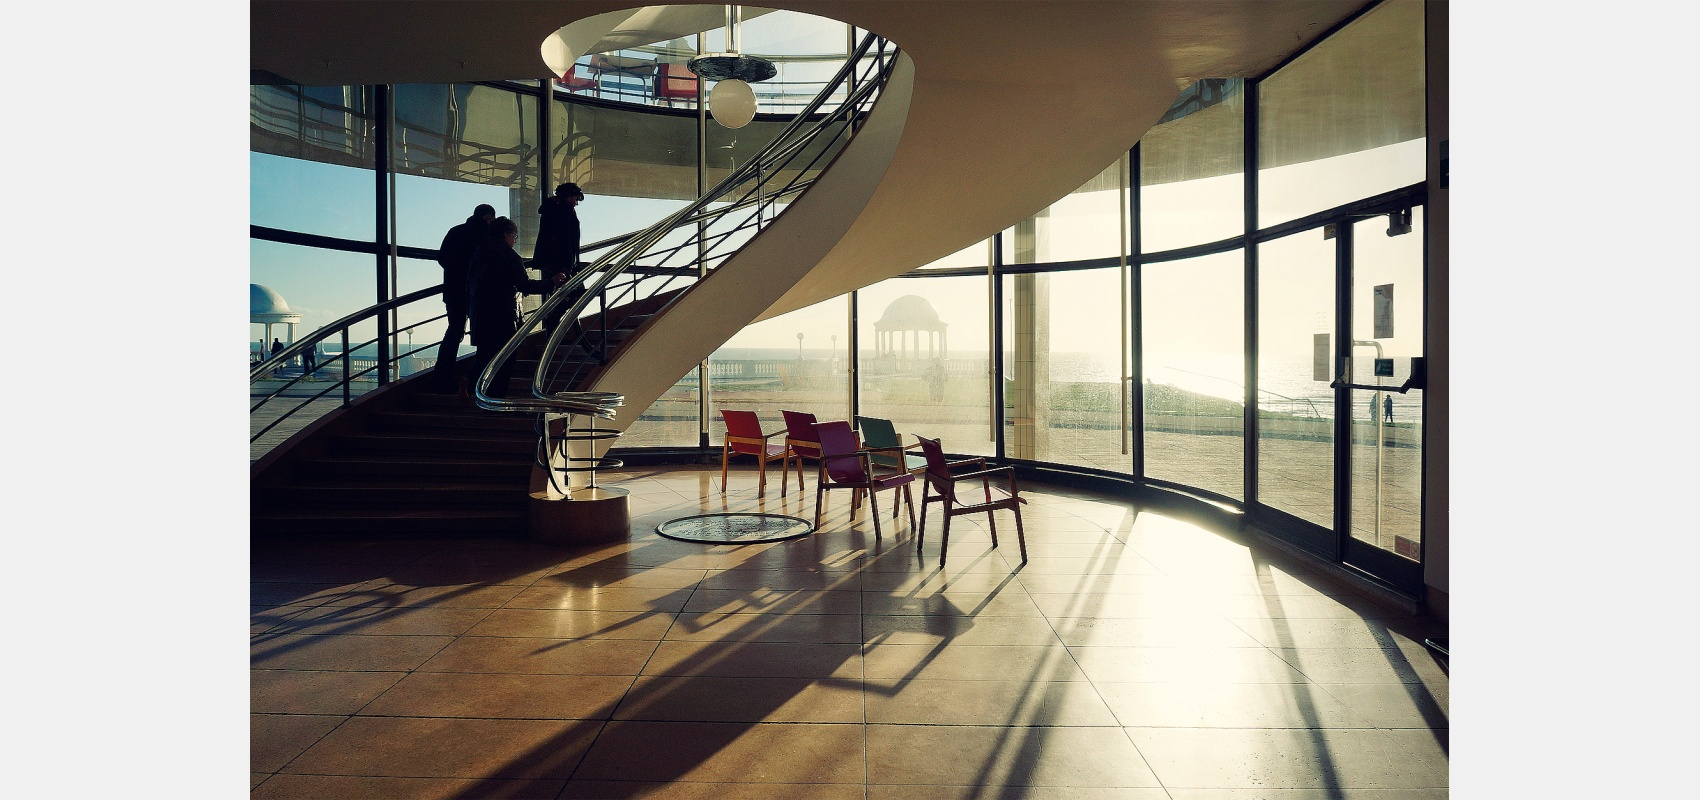 Architecture. Interior. Winter sun at the De La Warr Pavilion by the spiral stairs.